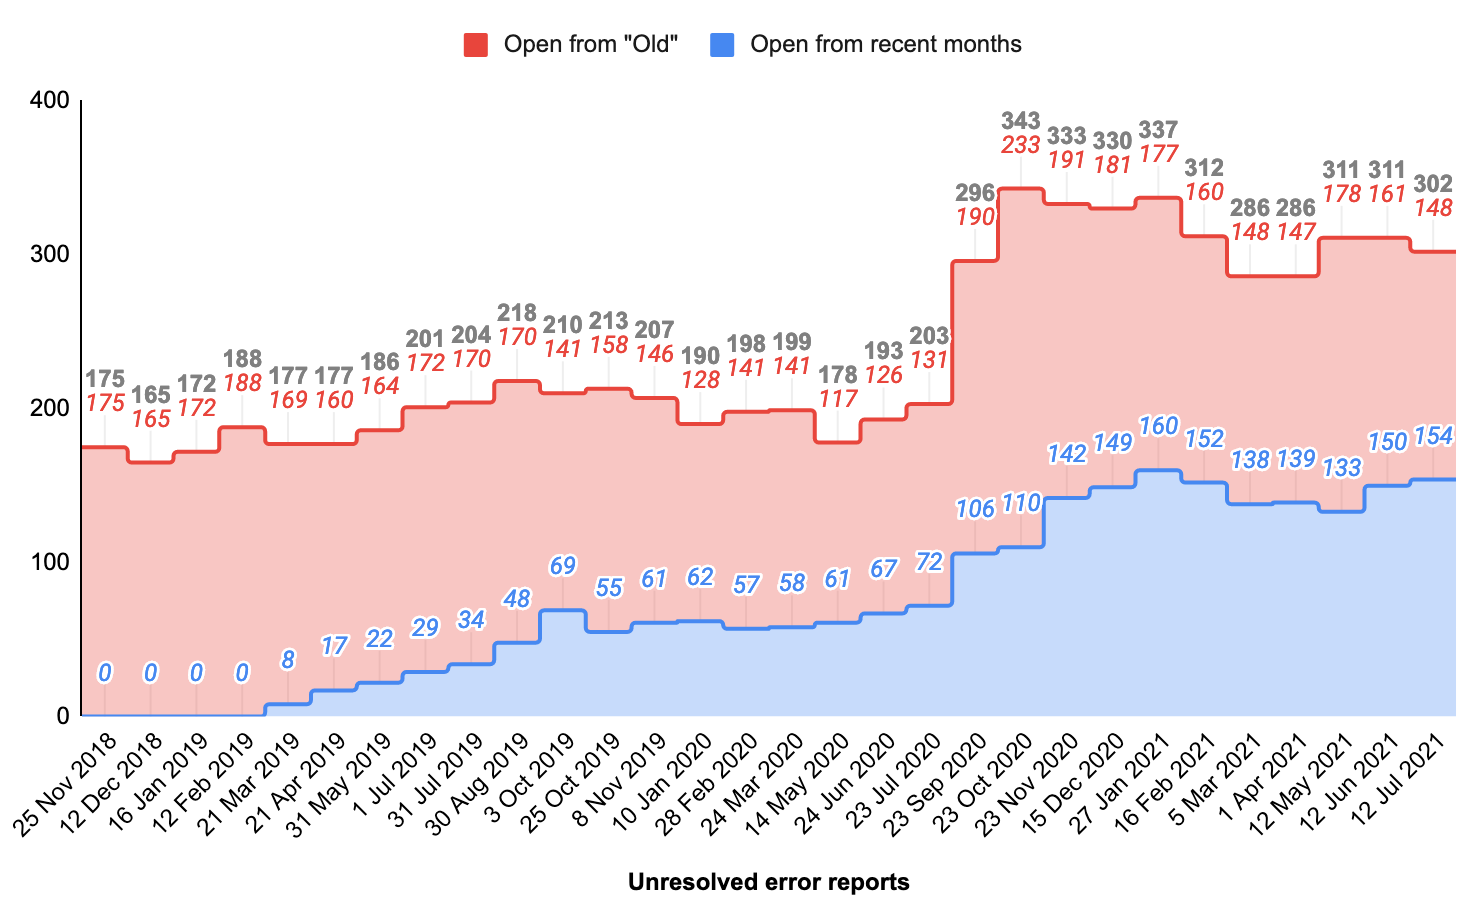 Total open production error tasks, by month.